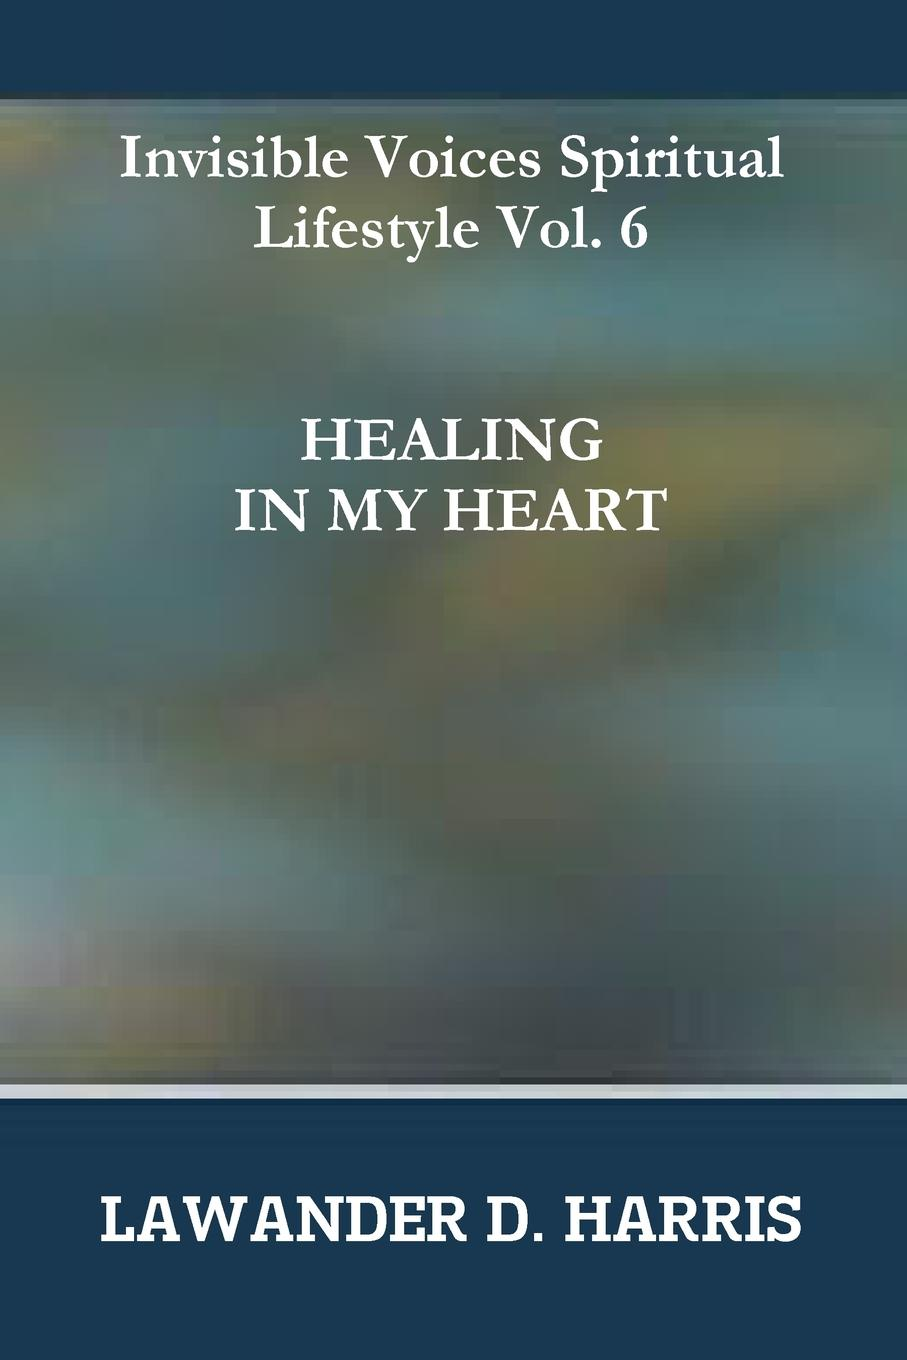 Lawander Harris Invisible Voices Spiritual Lifestyle Vol.6 HEALING IN MY HEART lawander harris invisible voices spiritual lifestyle vol 2 advantage